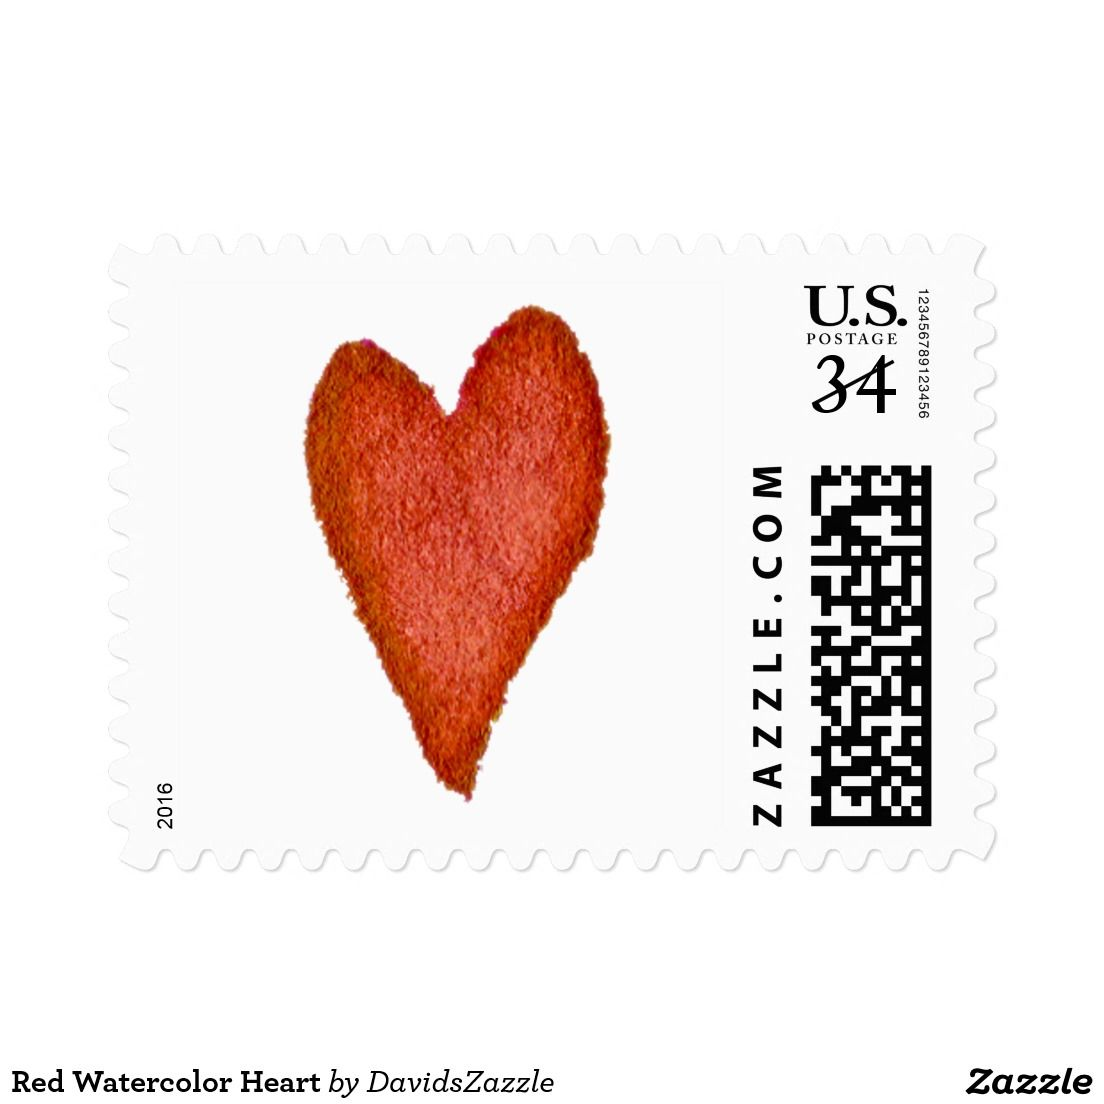 Red Watercolor Heart Postage  Watercolor Heart